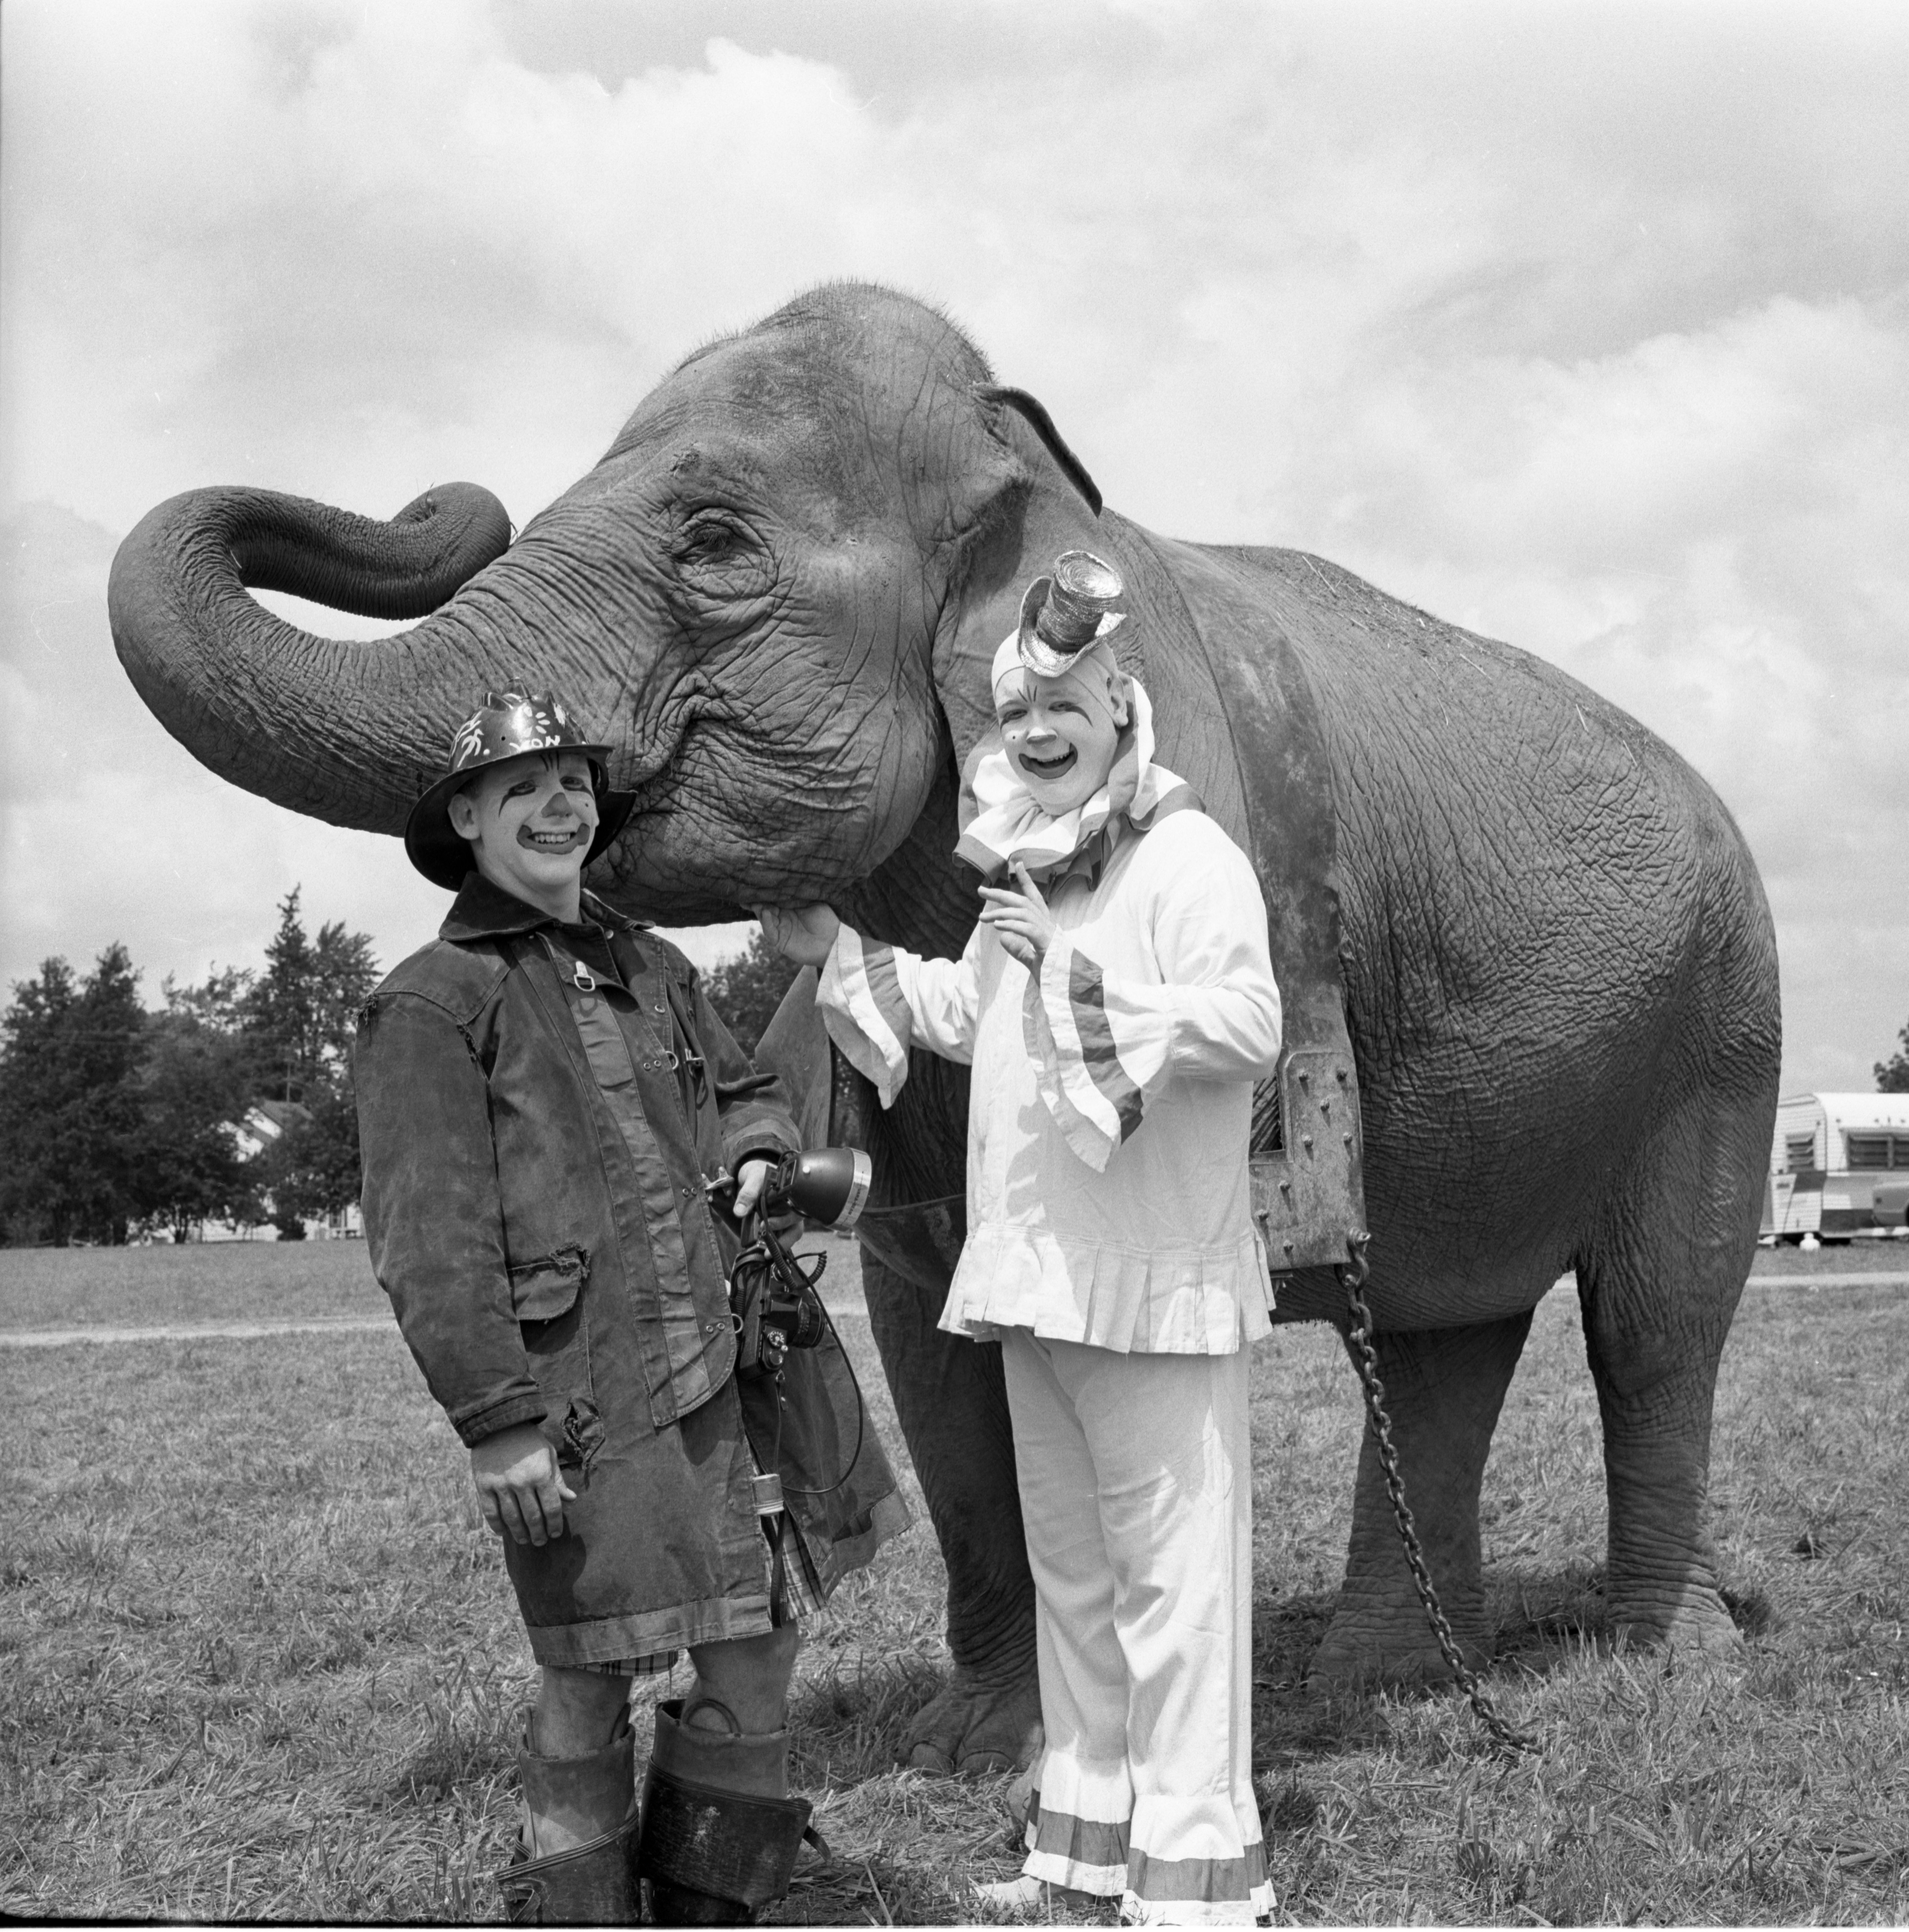 Clowns With Elephant At The Clyde-Beatty Cole Brothers Circus, August 8, 1968 image